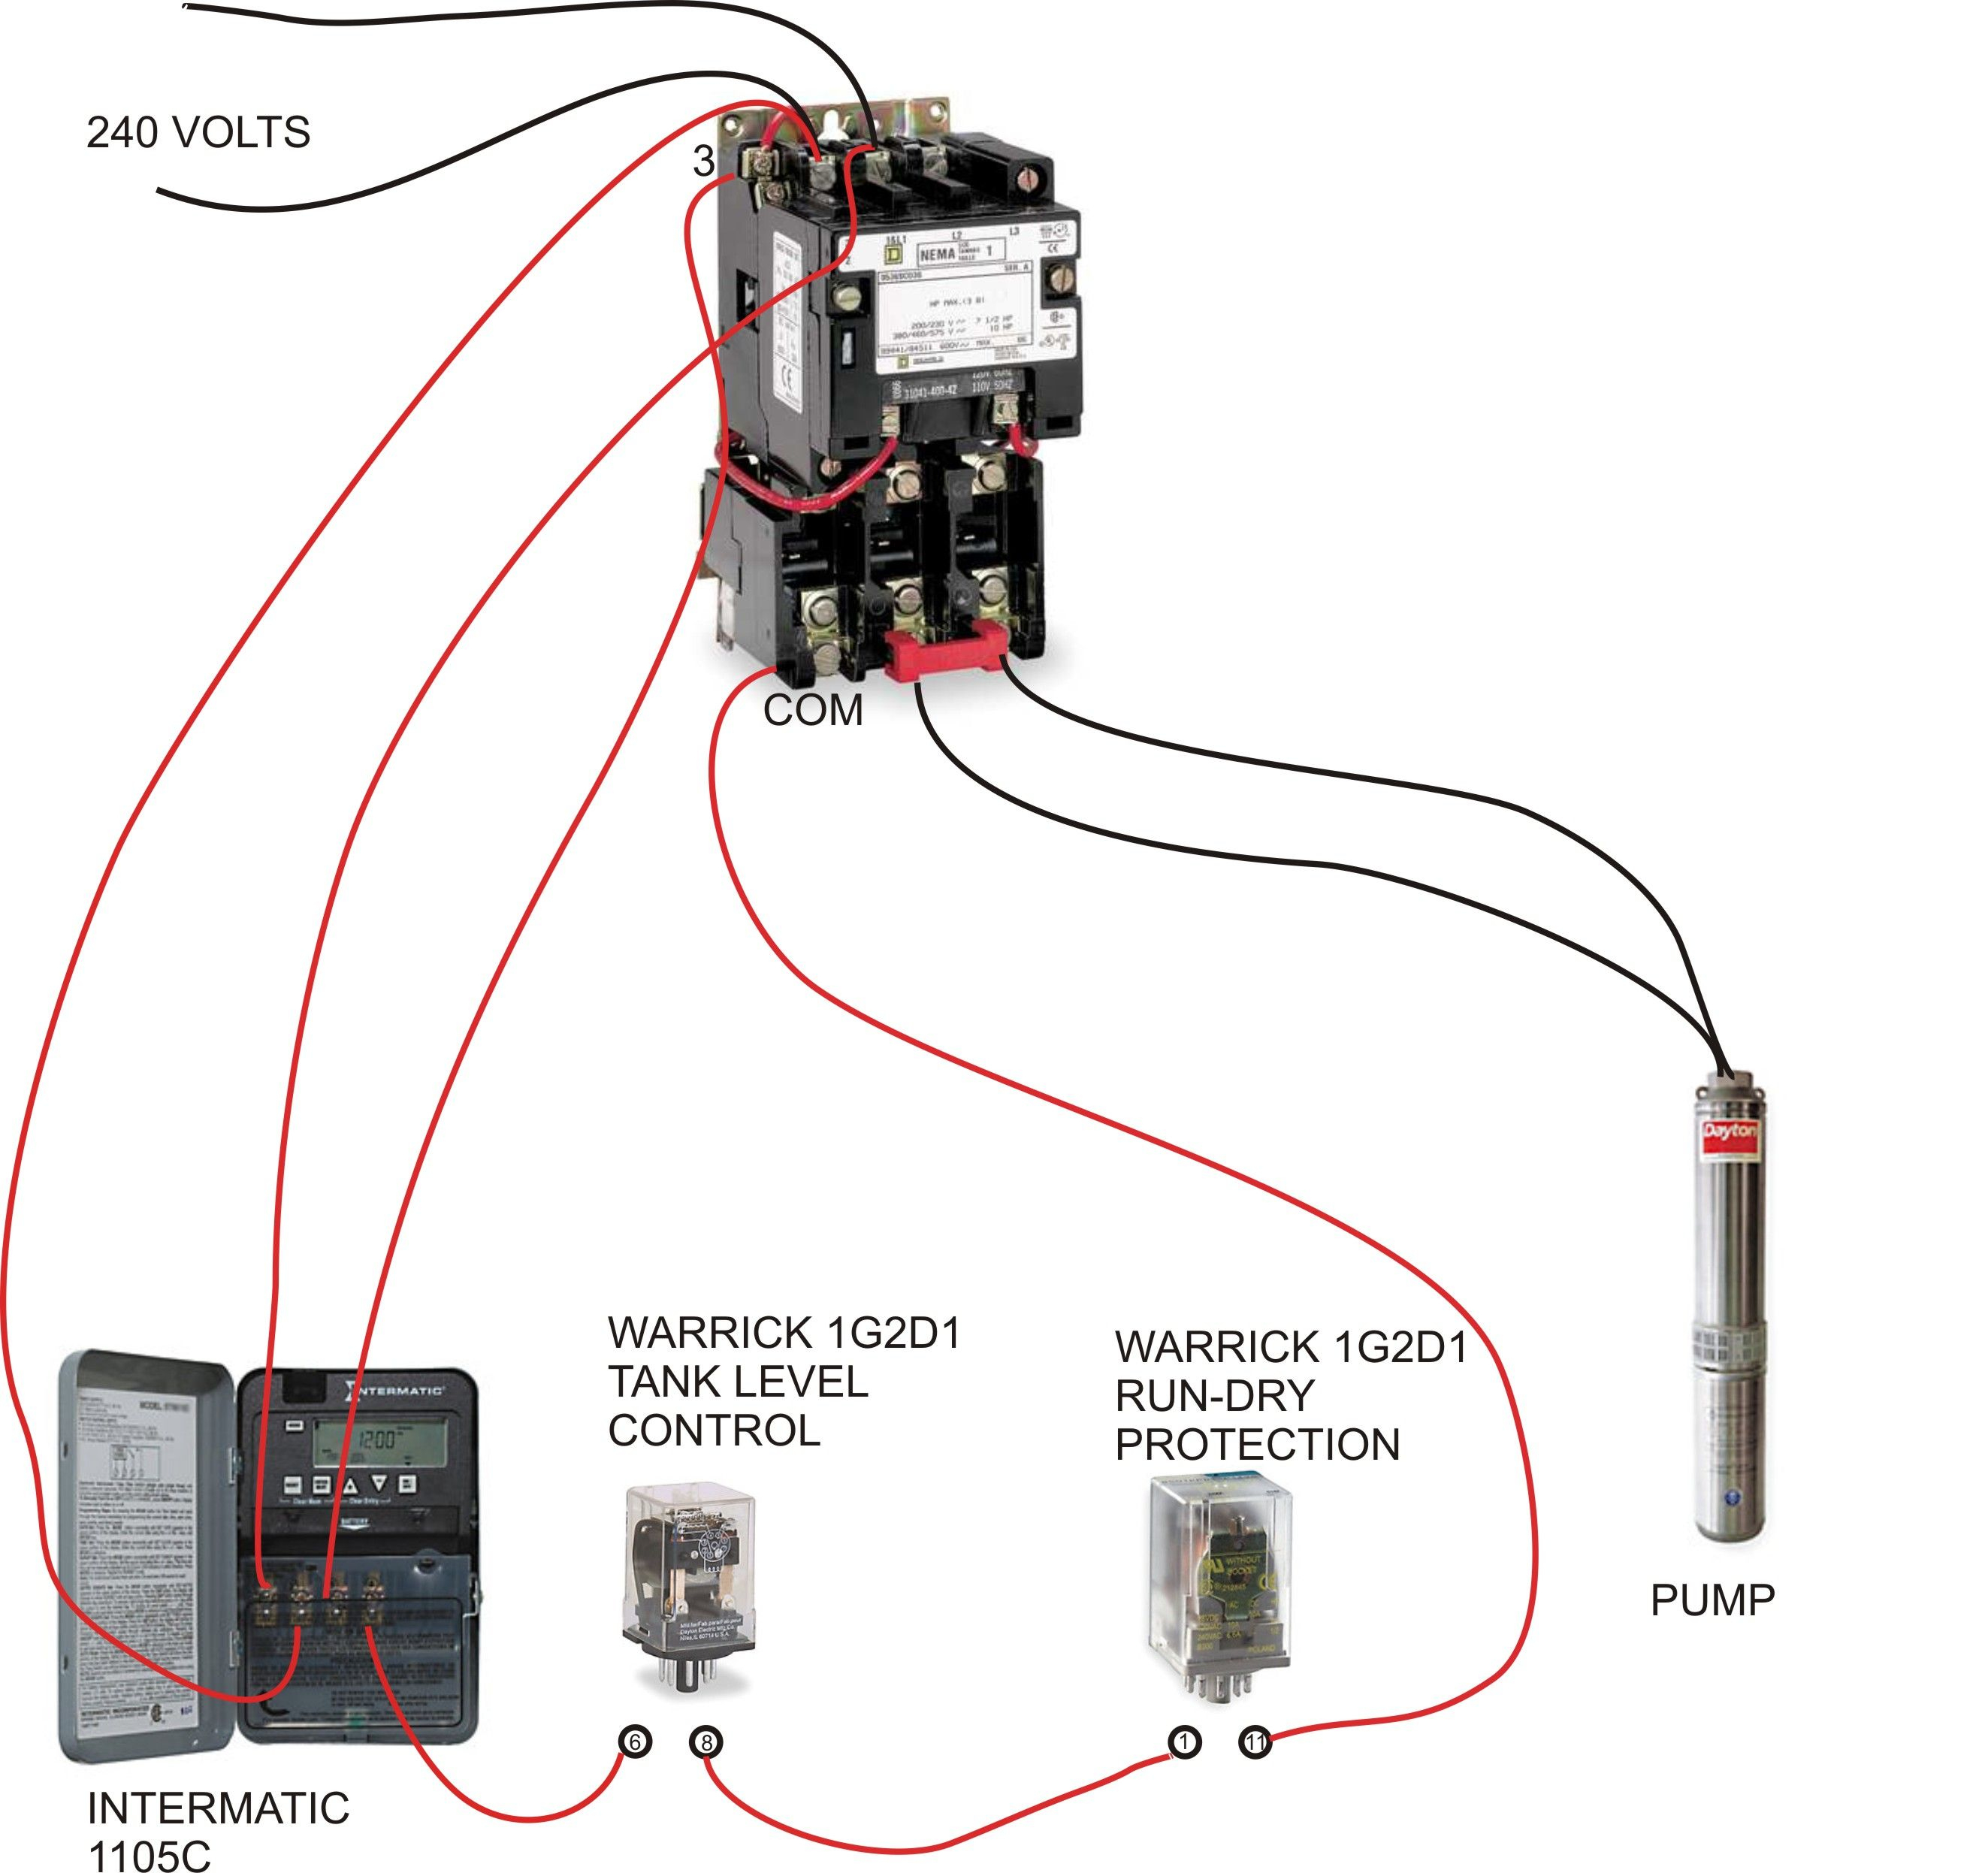 Square D Well Pump Pressure Switch Wiring Diagram With At To And - Pressure Switch Wiring Diagram